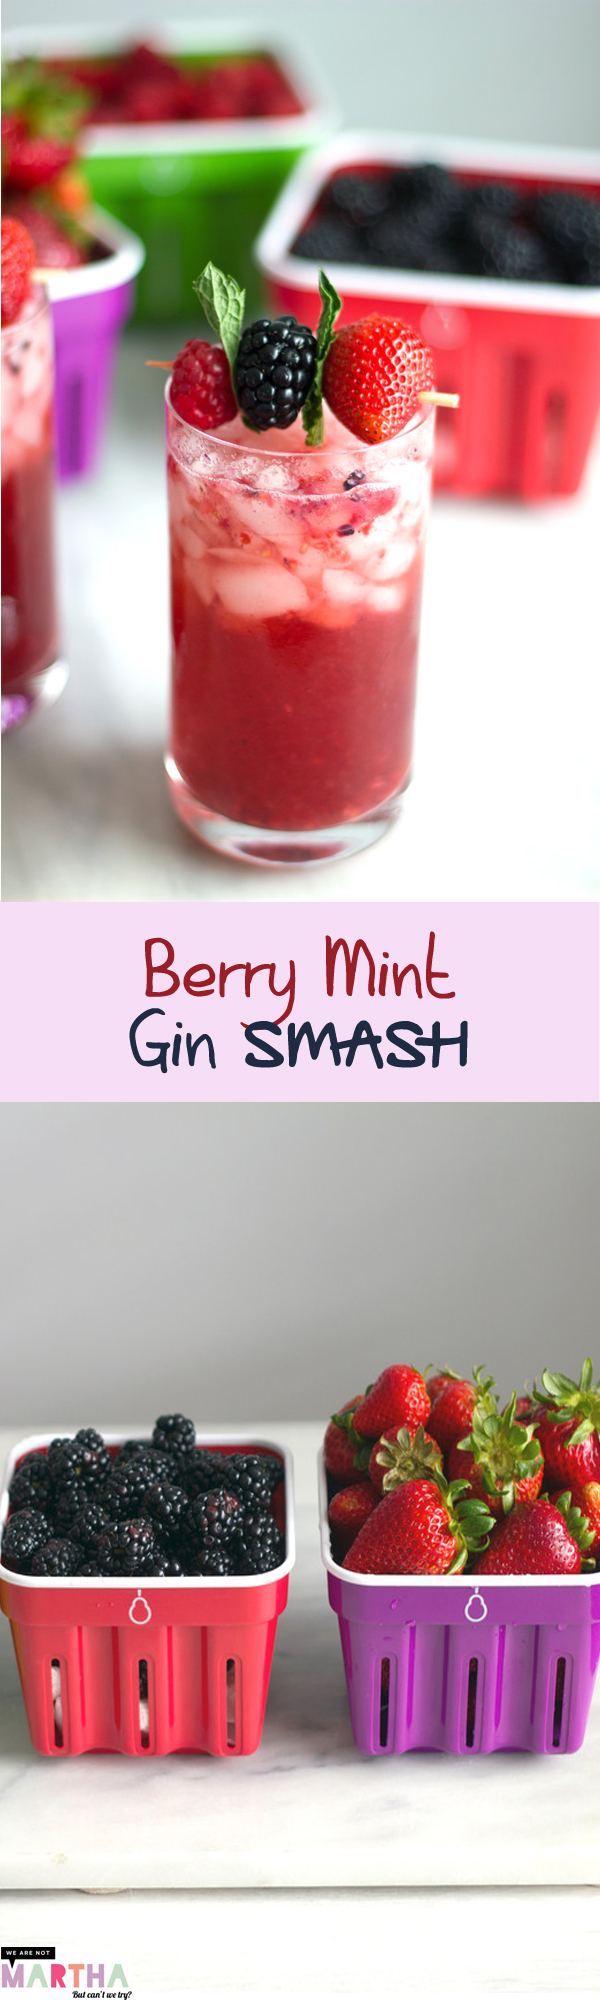 Berry Min Gin Smash -- This berry cocktail is loaded with fresh blackberries, raspberries and strawberries, plus a whole lot of mint and a splash of gin. The perfect summer drink! | wearenotmartha.com